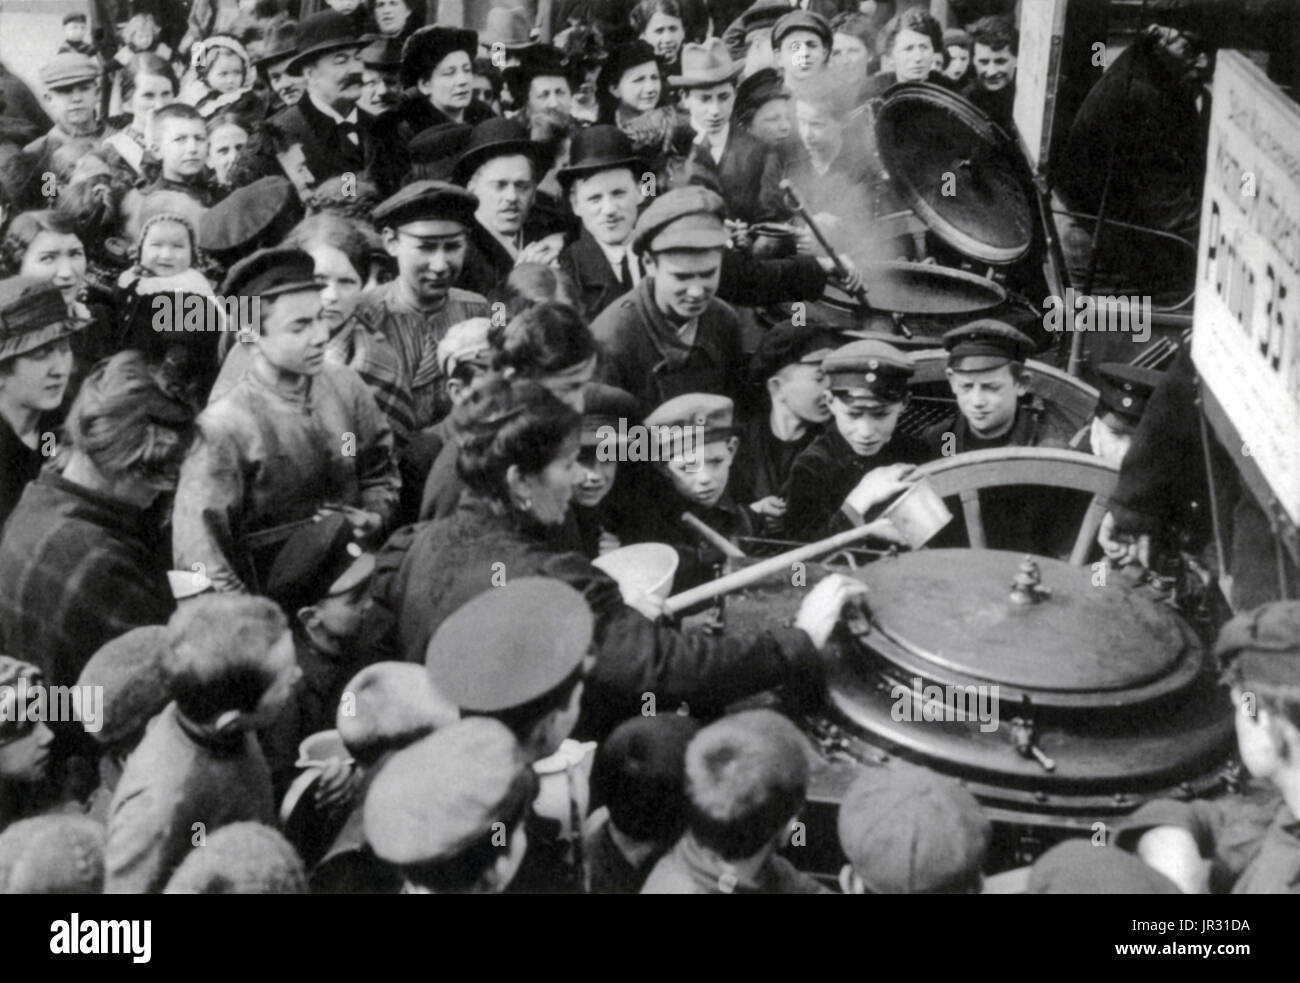 People waiting for soup in Berlin, 1916. The Blockade of Germany, from 1914-19, was a prolonged naval operation conducted by the Allied Powers during and after WWI in an effort to restrict the maritime supply of goods to the Central Powers. It is considered one of the key elements in the eventual Allied victory in the war. The German government made strong attempts to counter the effects of the blockade; a complicated rationing system initially introduced in January 1915 aimed to ensure that a minimum nutritional need was met, with 'war kitchens' providing cheap mass meals to impoverished civi - Stock Image